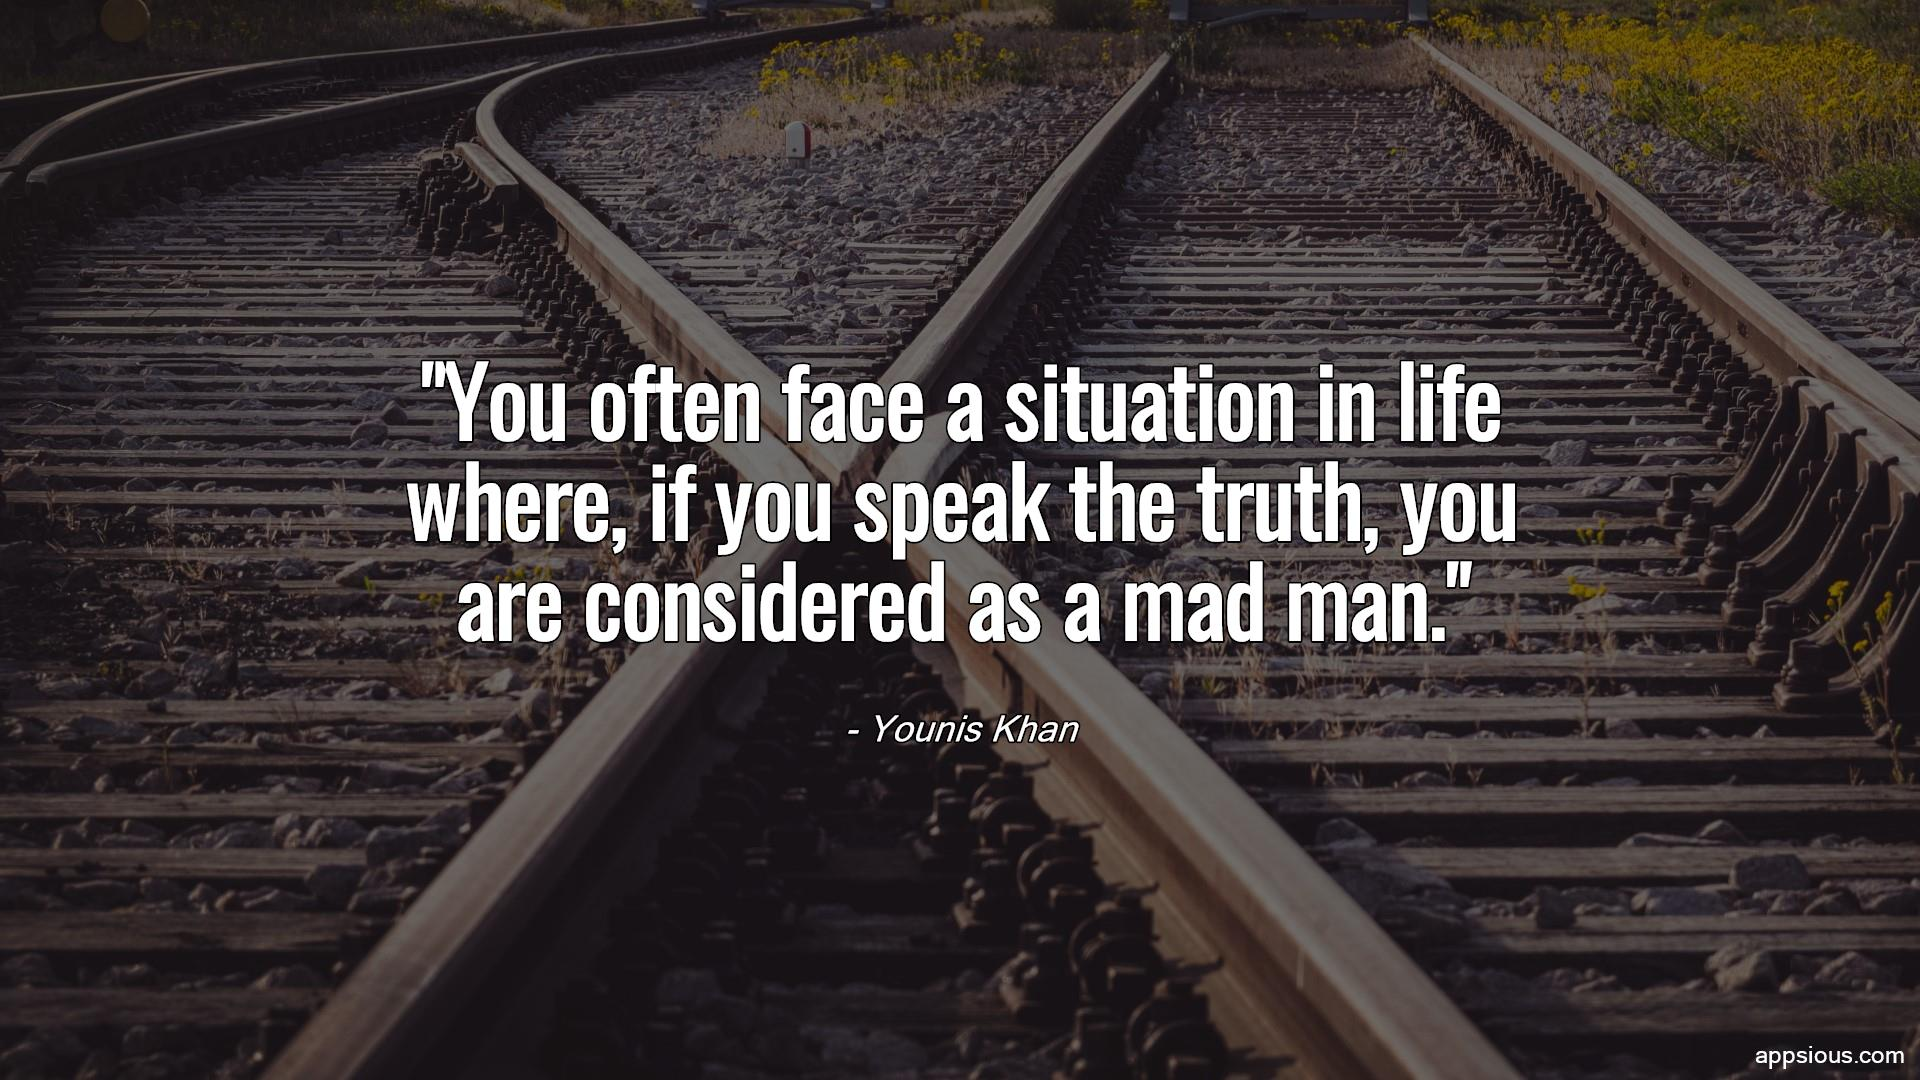 You often face a situation in life where, if you speak the truth, you are considered as a mad man.